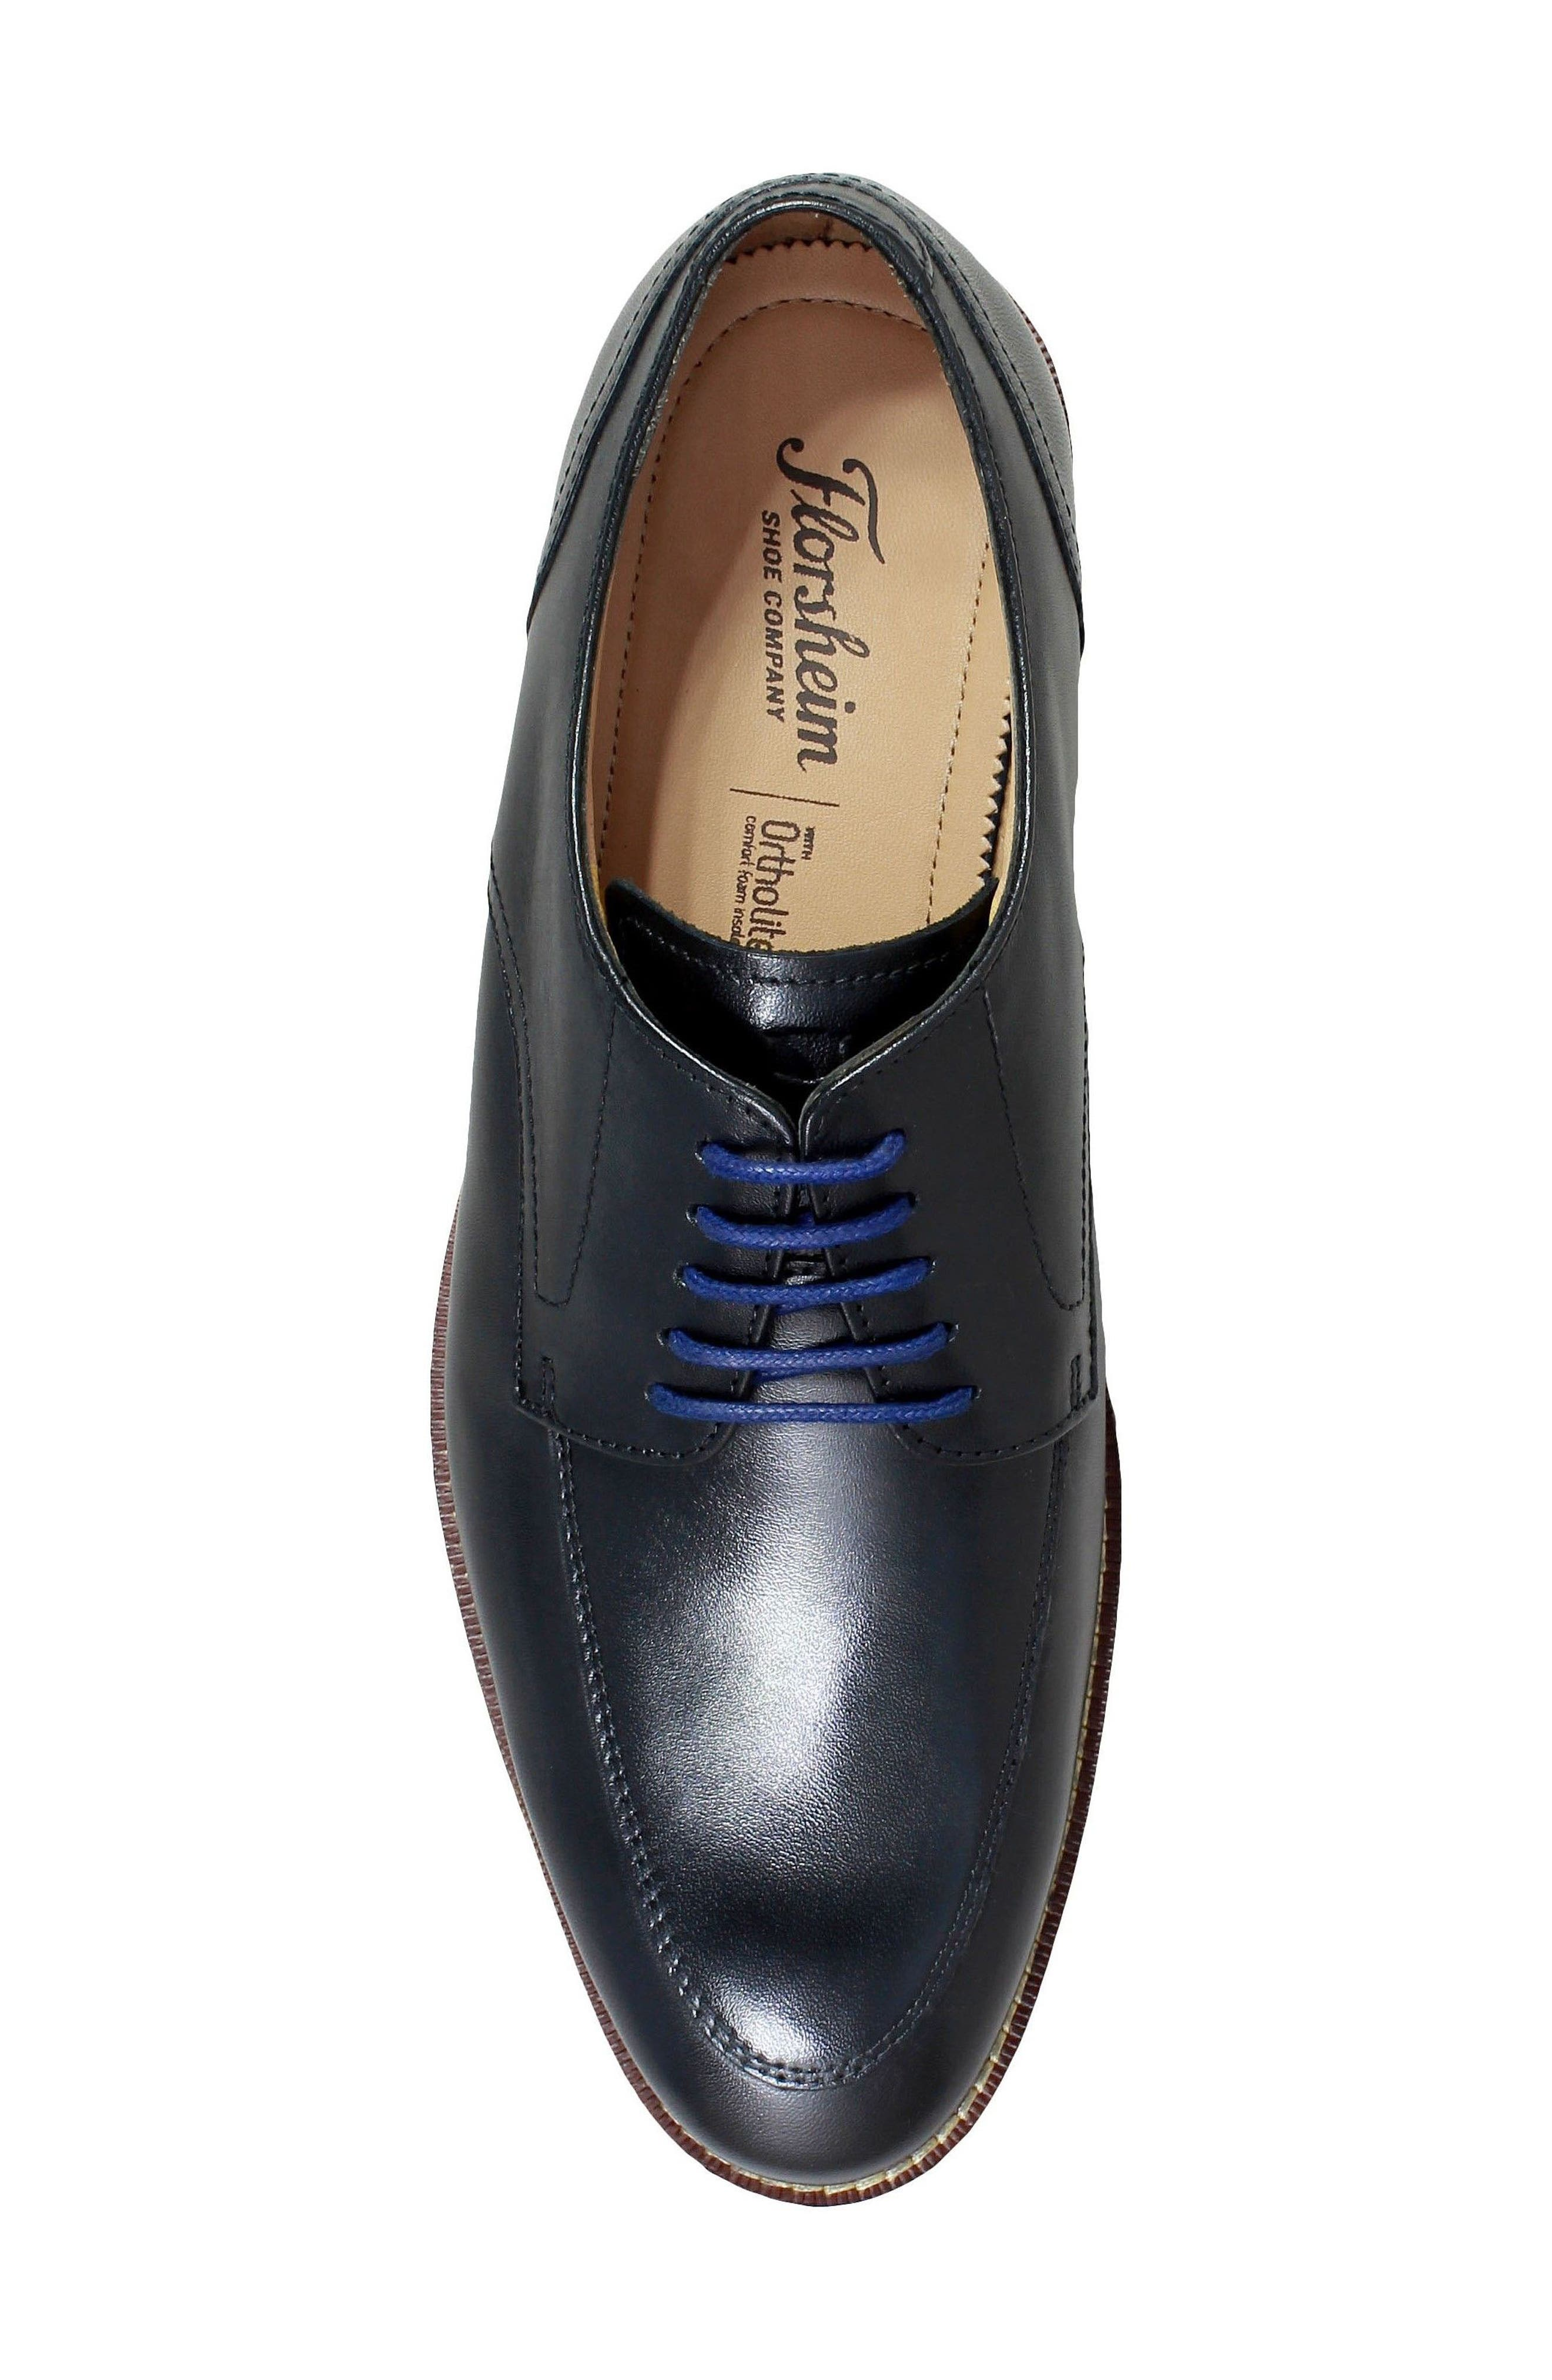 Salerno Apron Toe Derby,                             Alternate thumbnail 5, color,                             BLACK LEATHER